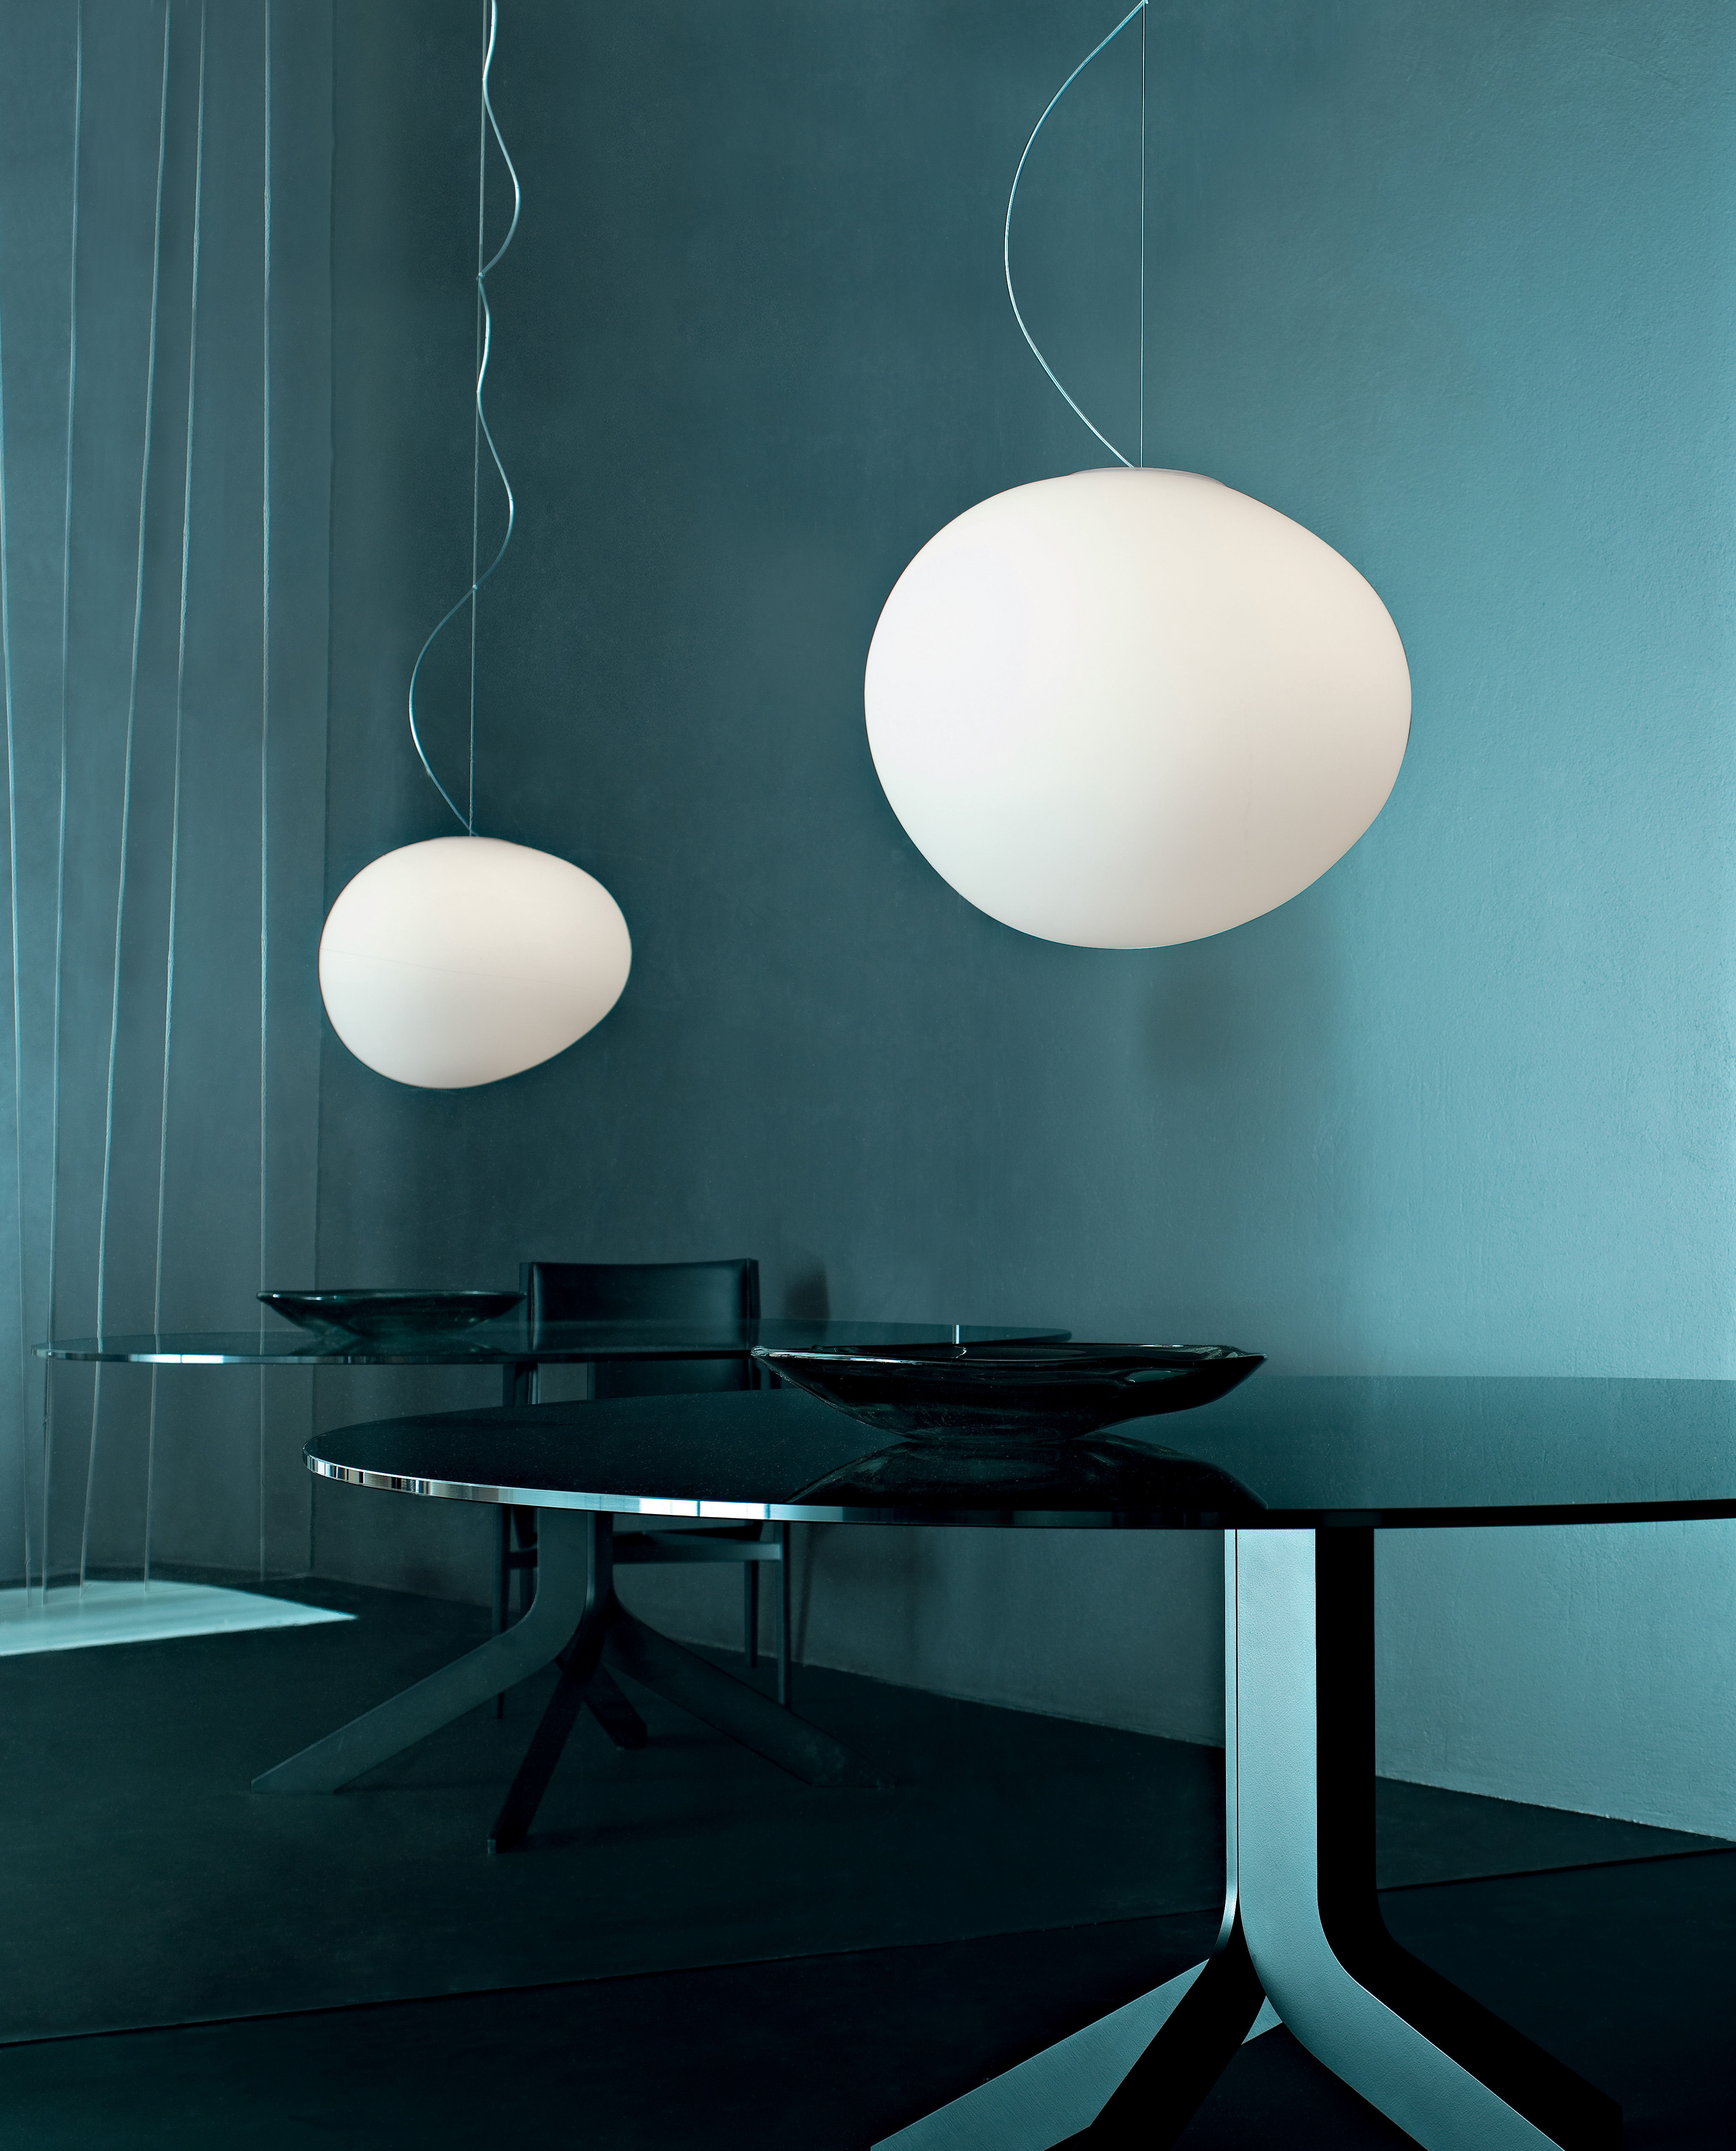 gregg grande pendant large white by foscarini. Black Bedroom Furniture Sets. Home Design Ideas